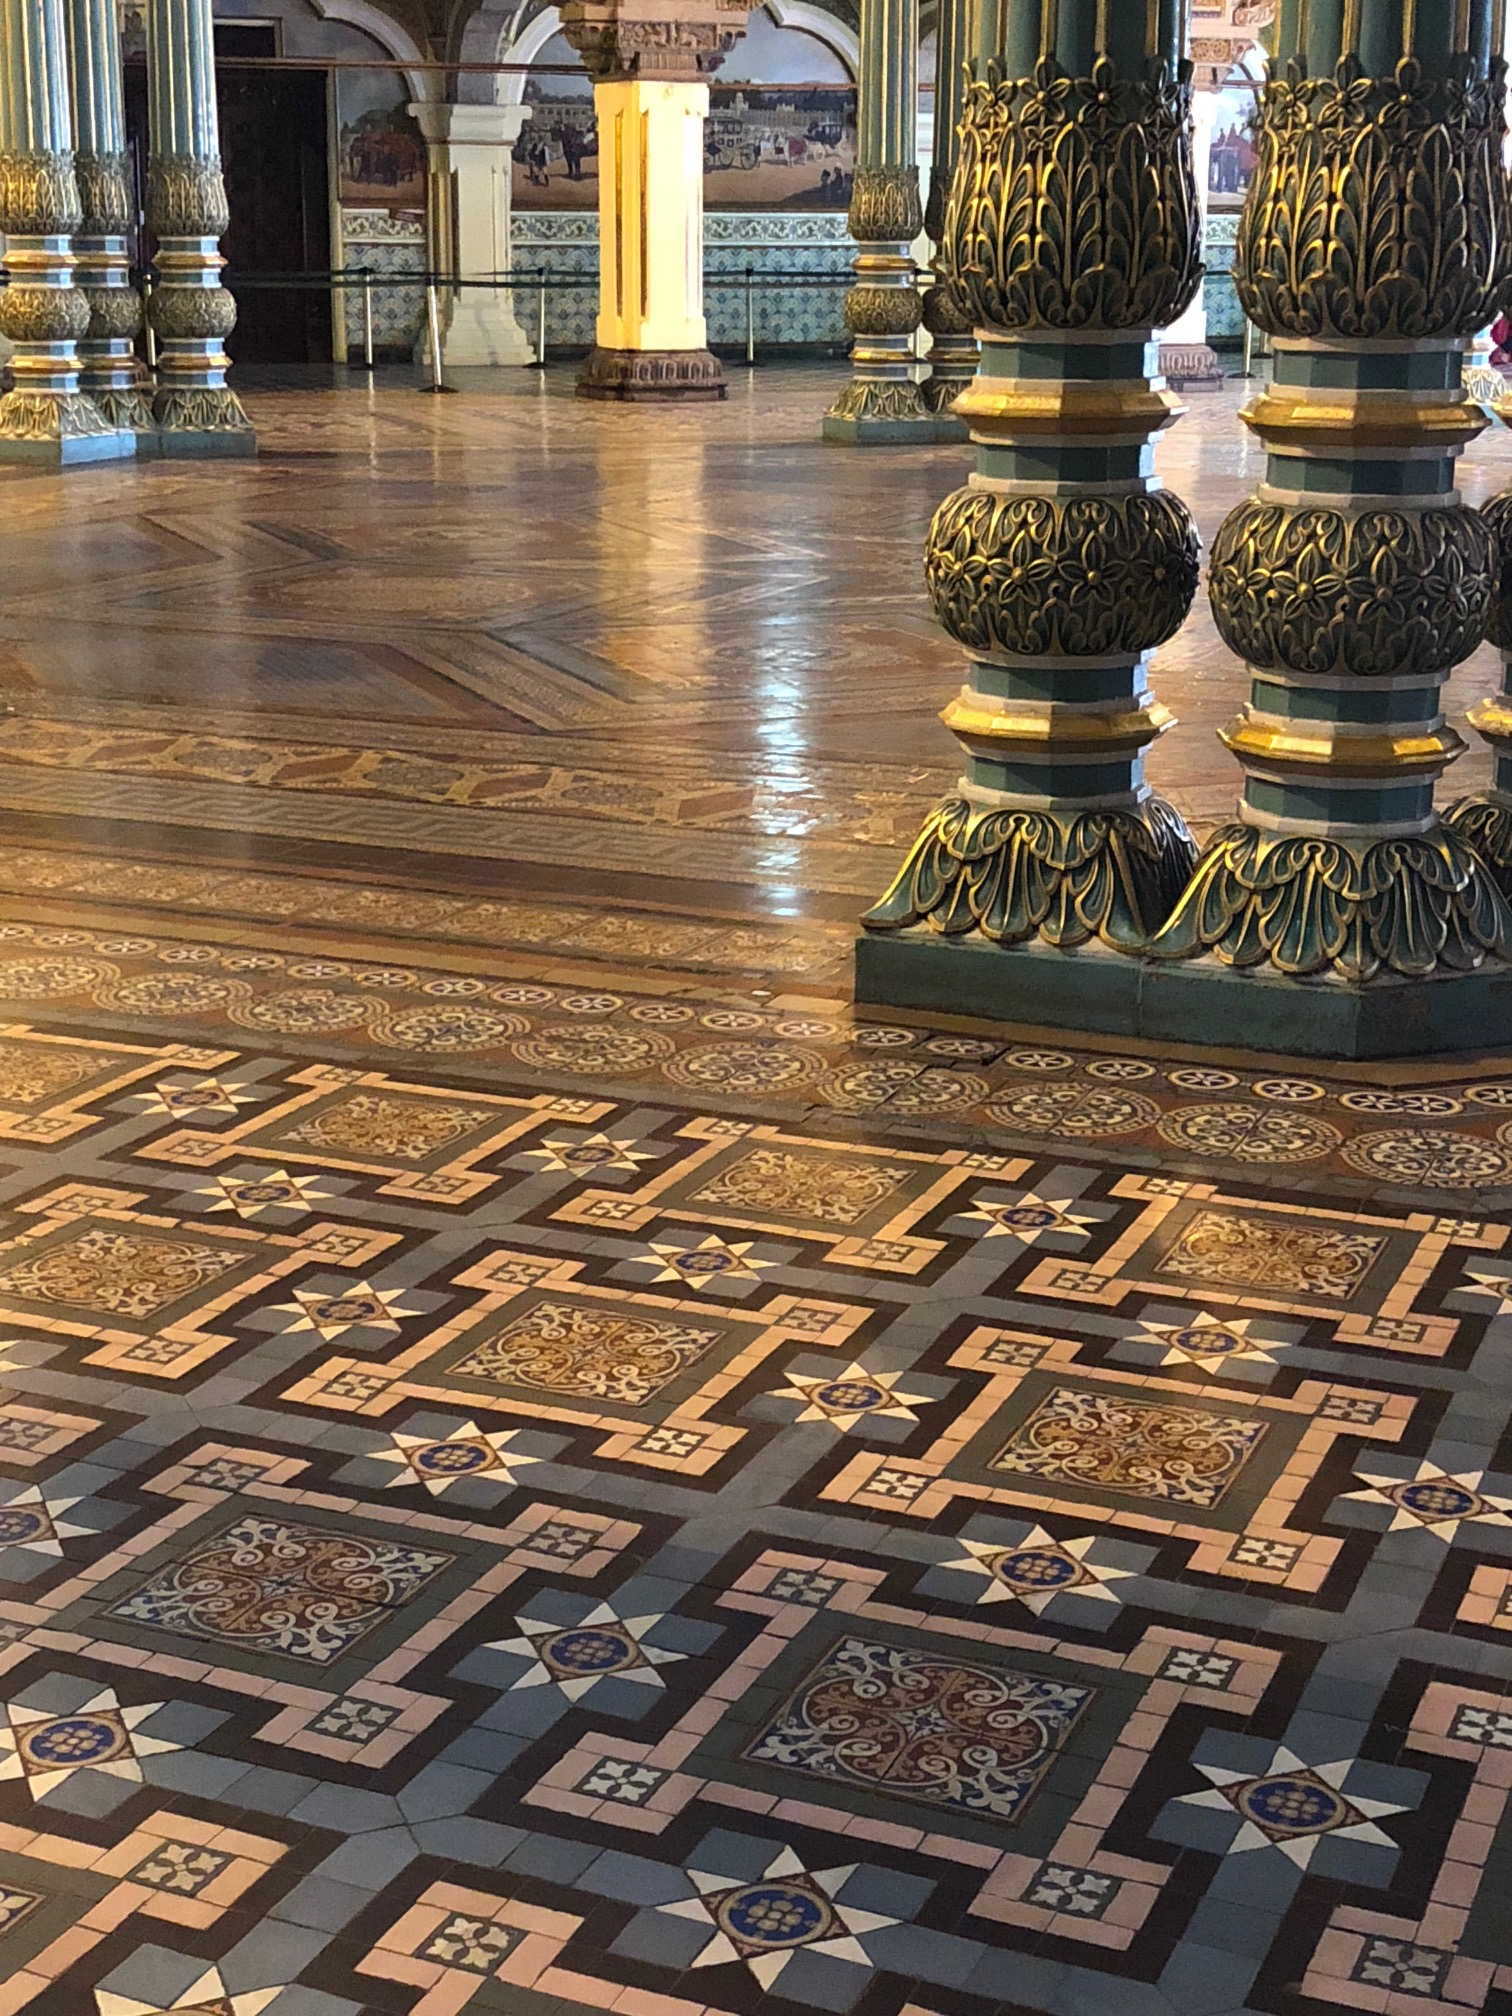 Green columns are painted with gold accents giving the impression of foliage surround a large tiled octagonal floor.